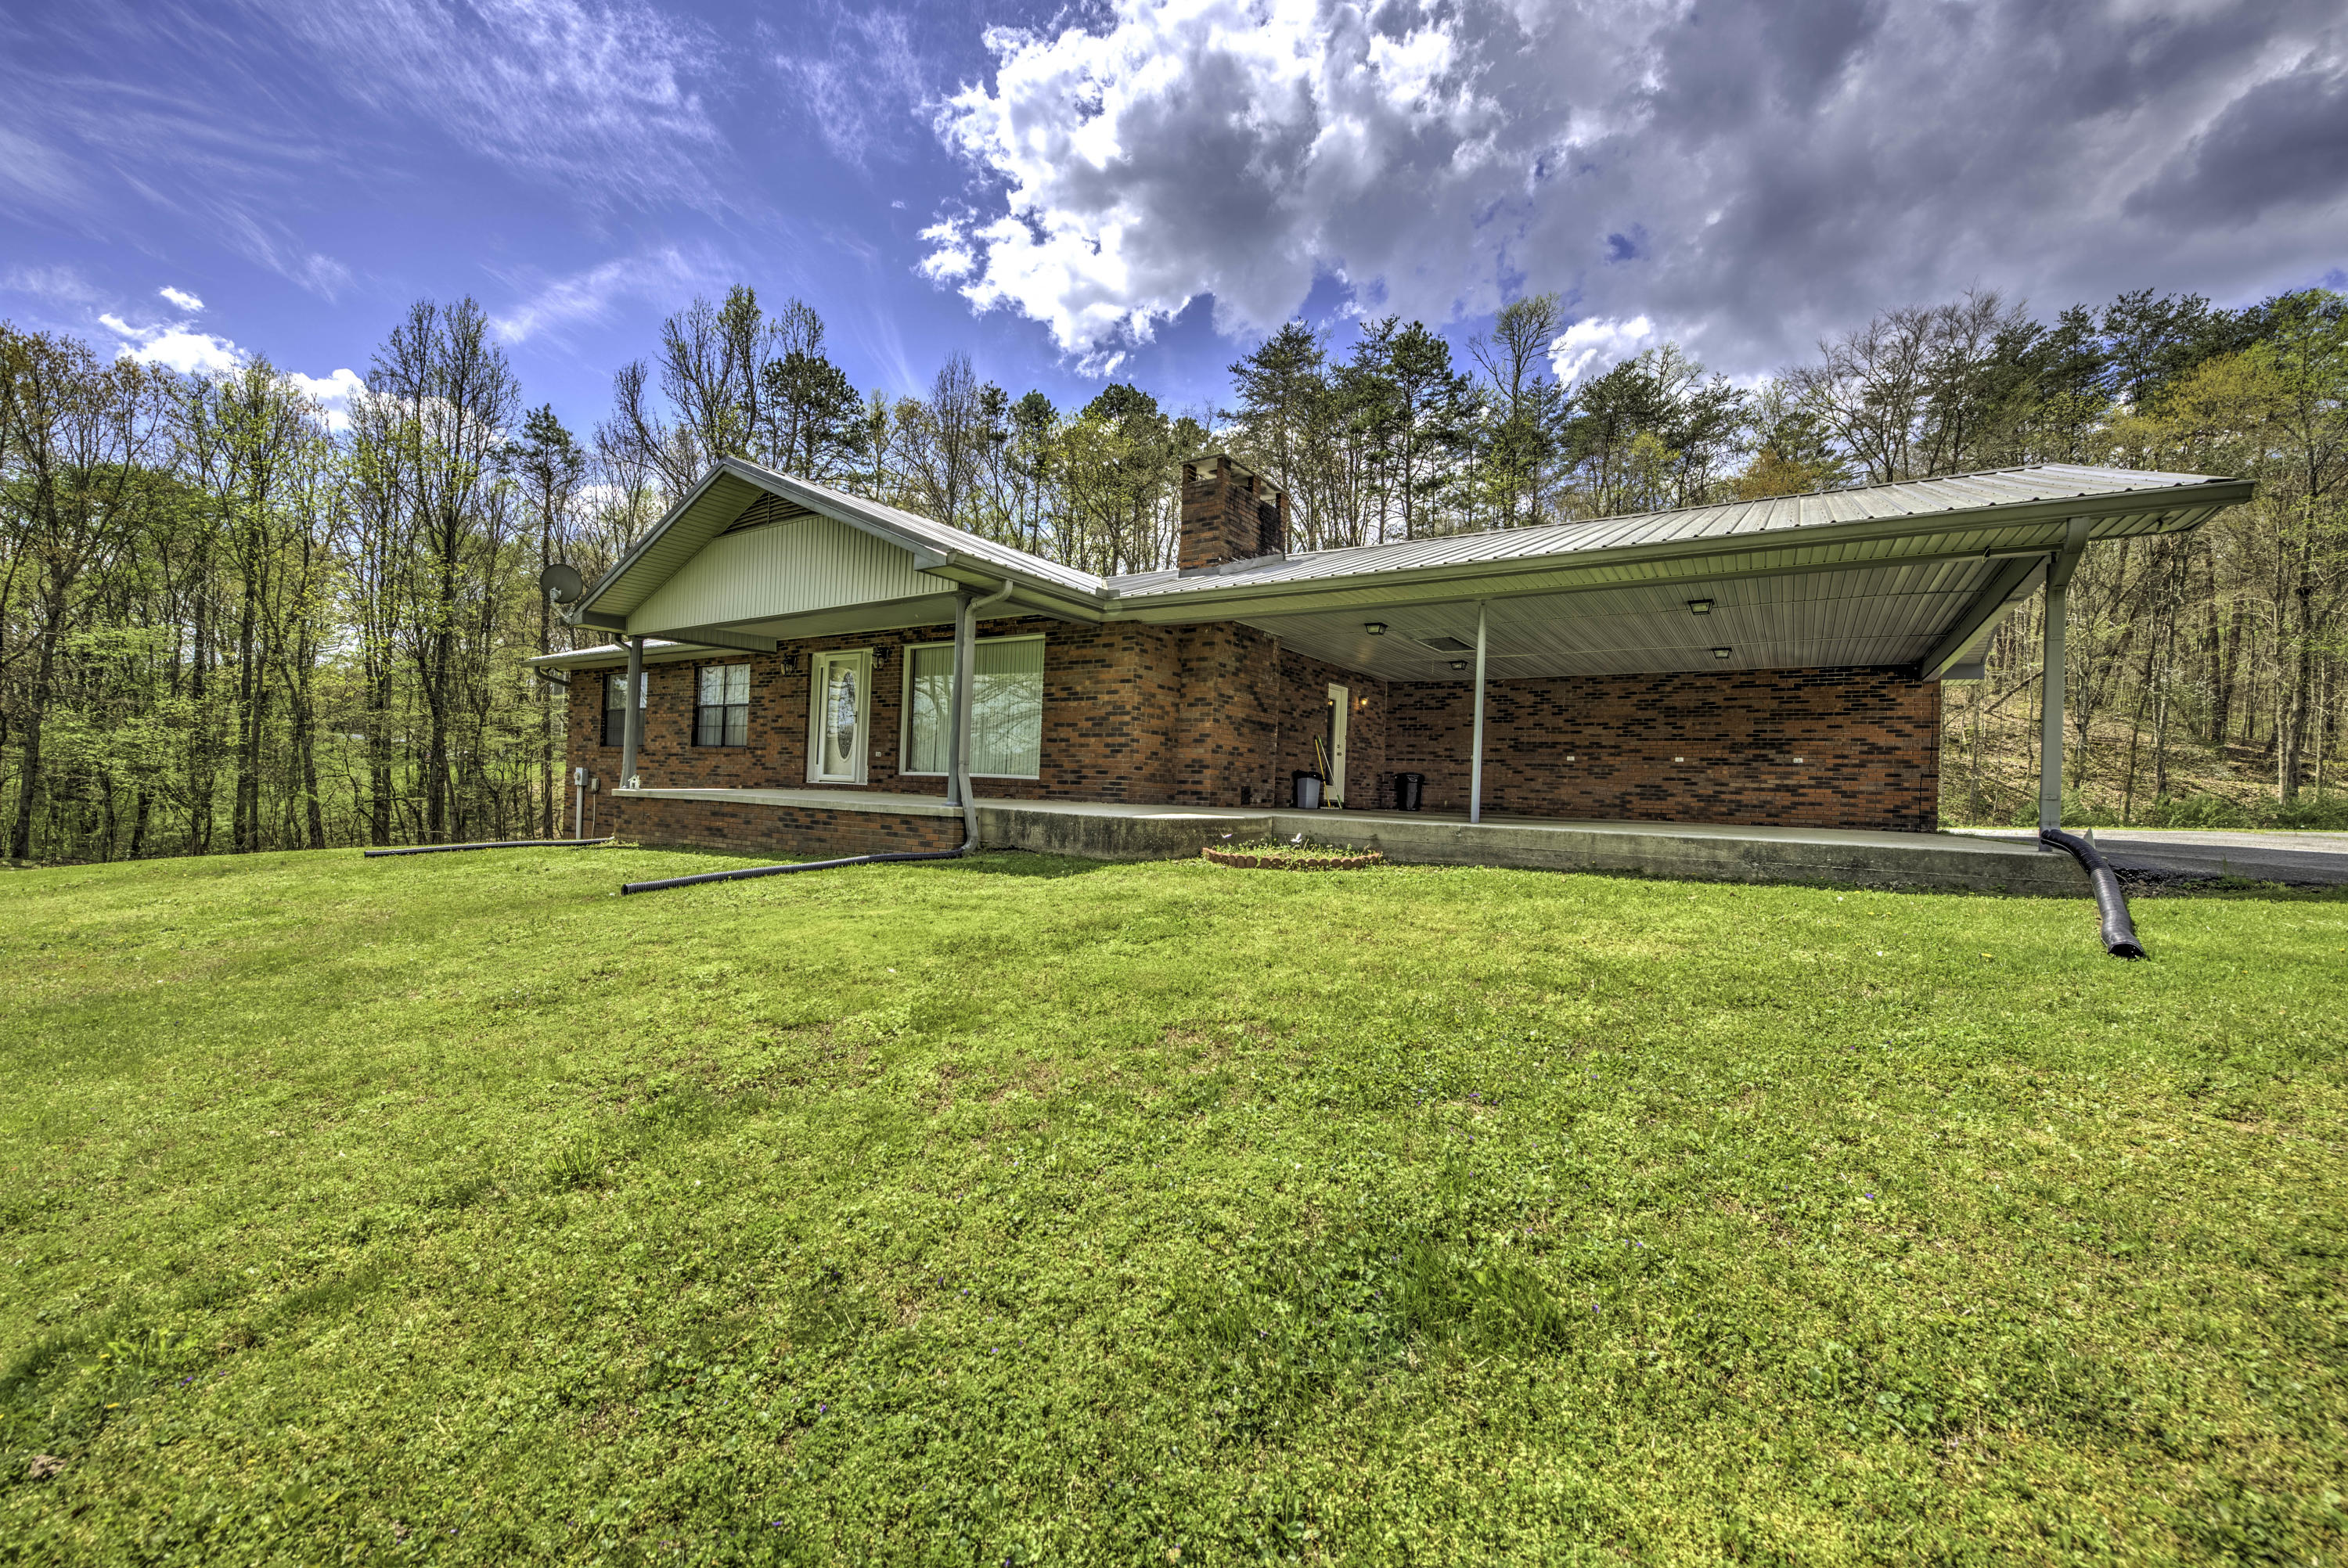 20200407212300903076000000-o Listings anderson county homes for sale